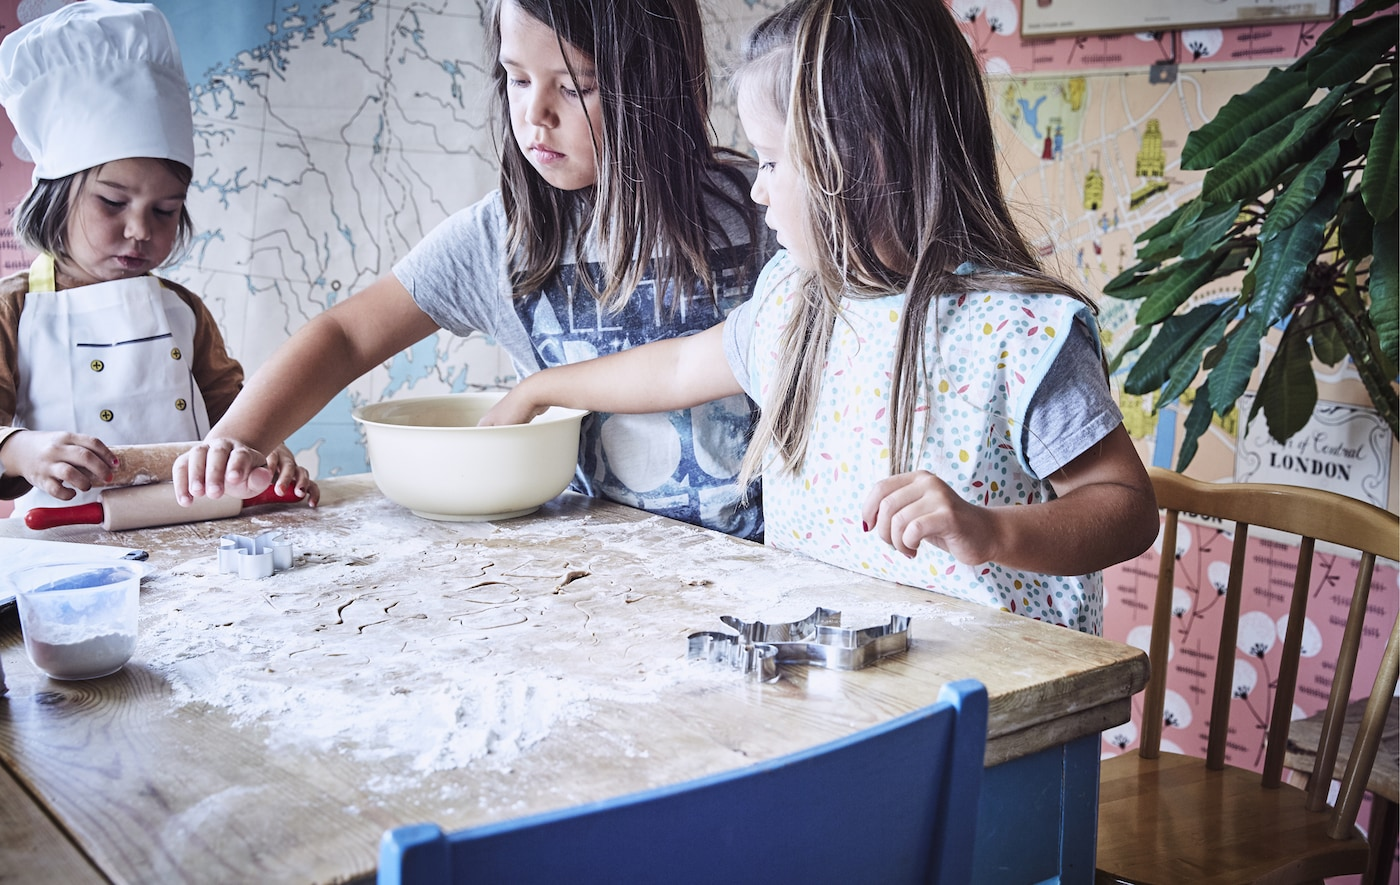 Three children standing around a table with flour, dough and baking utensils.